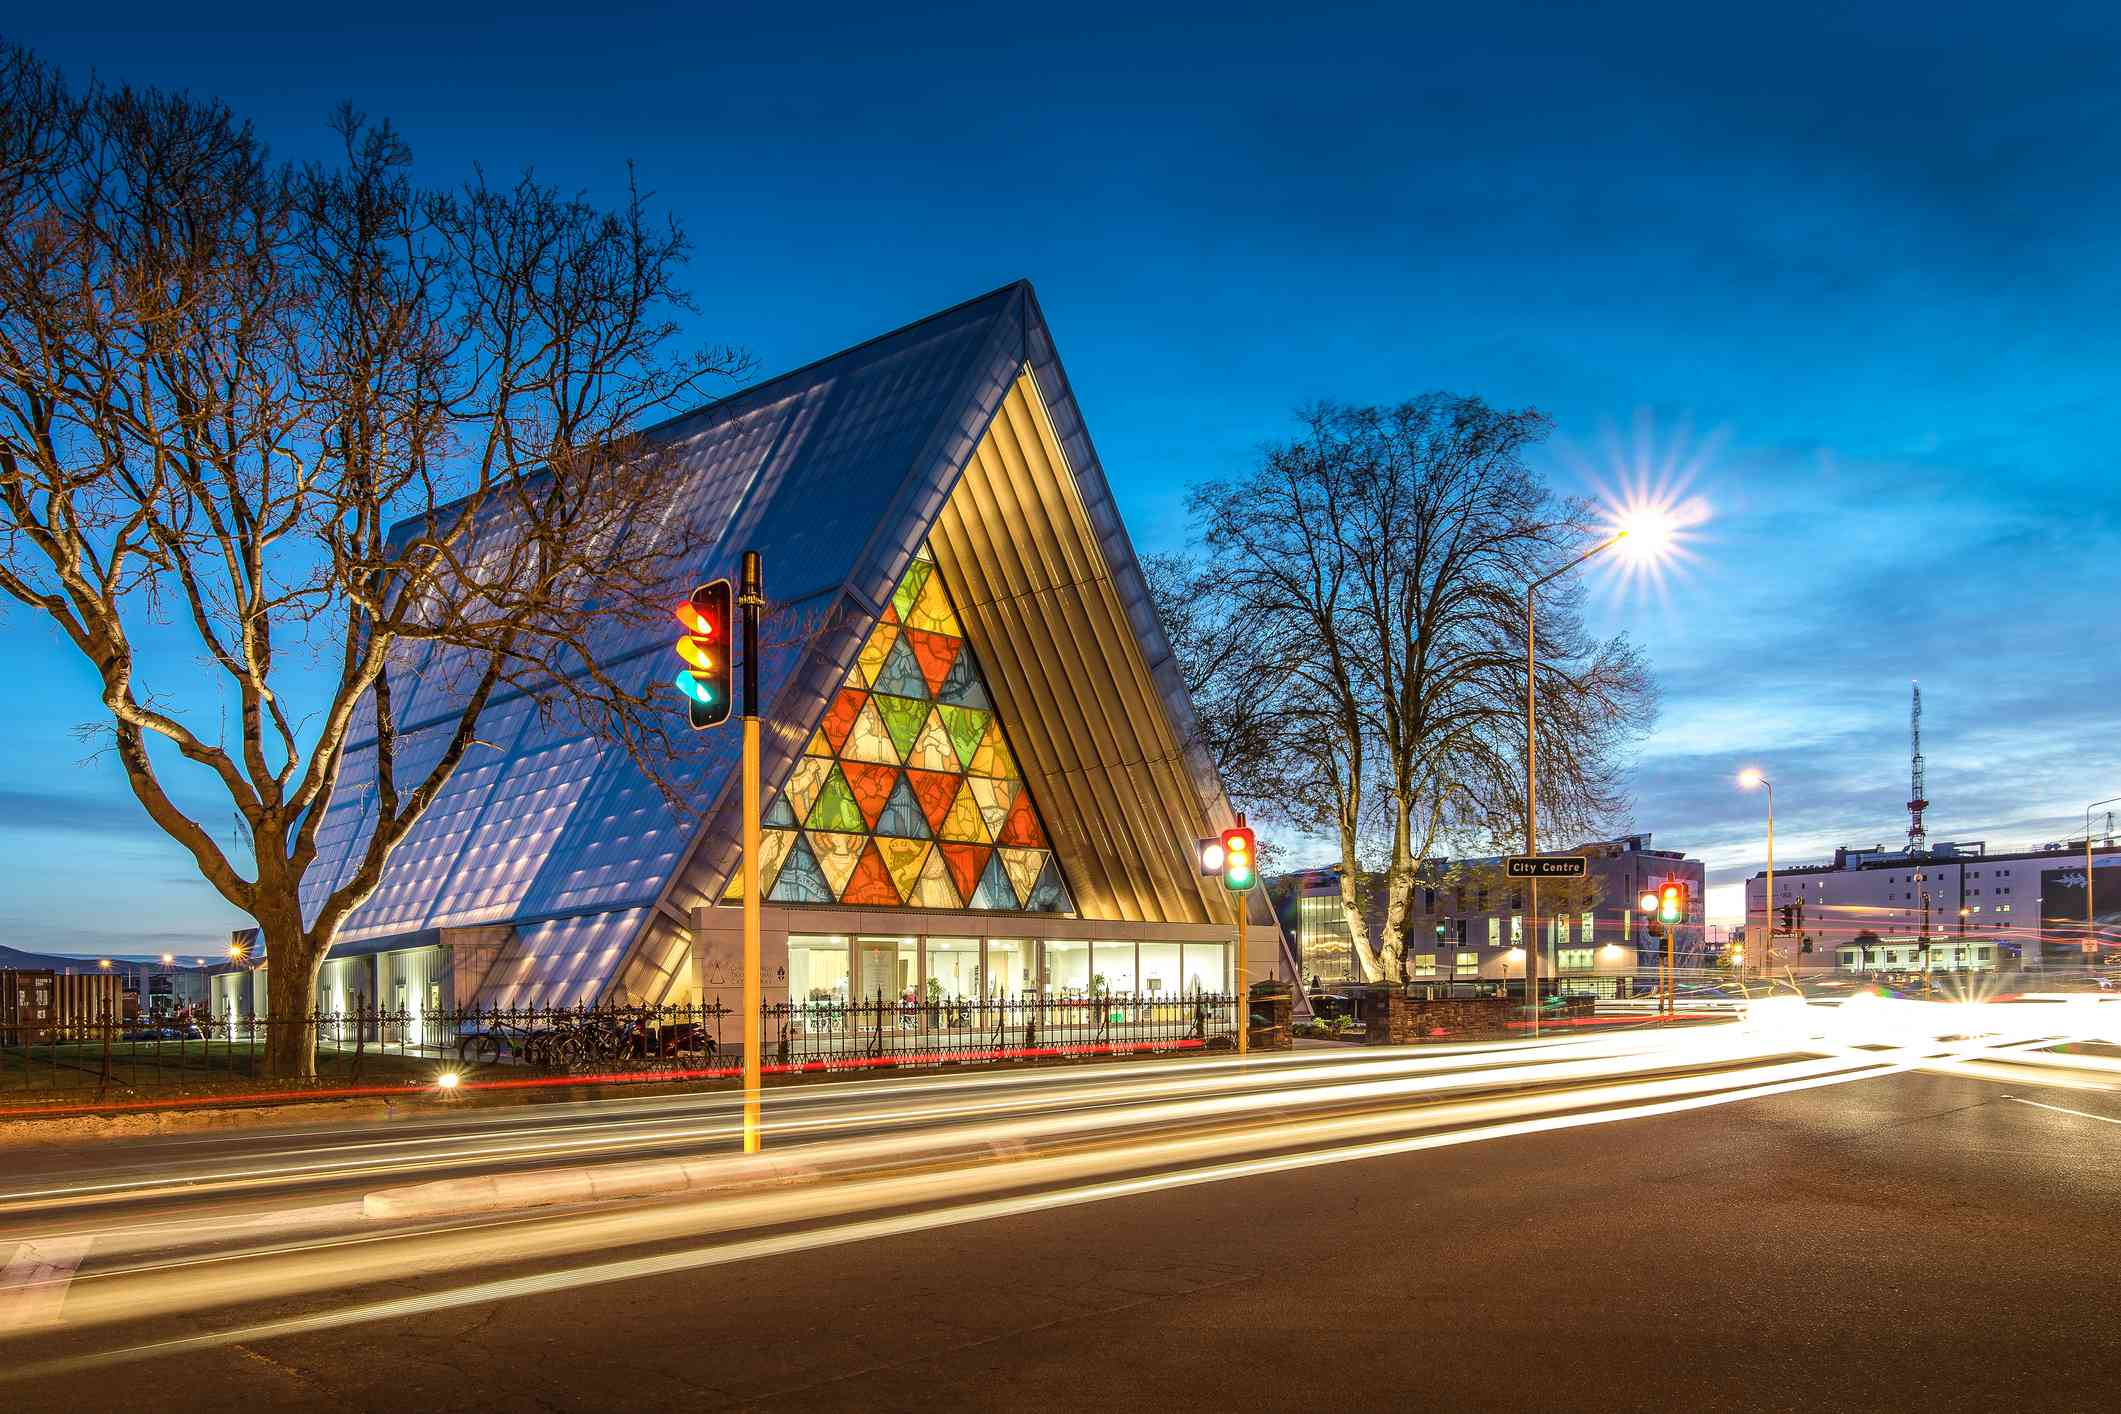 triangular church building with colorful windows and car lights at dusk